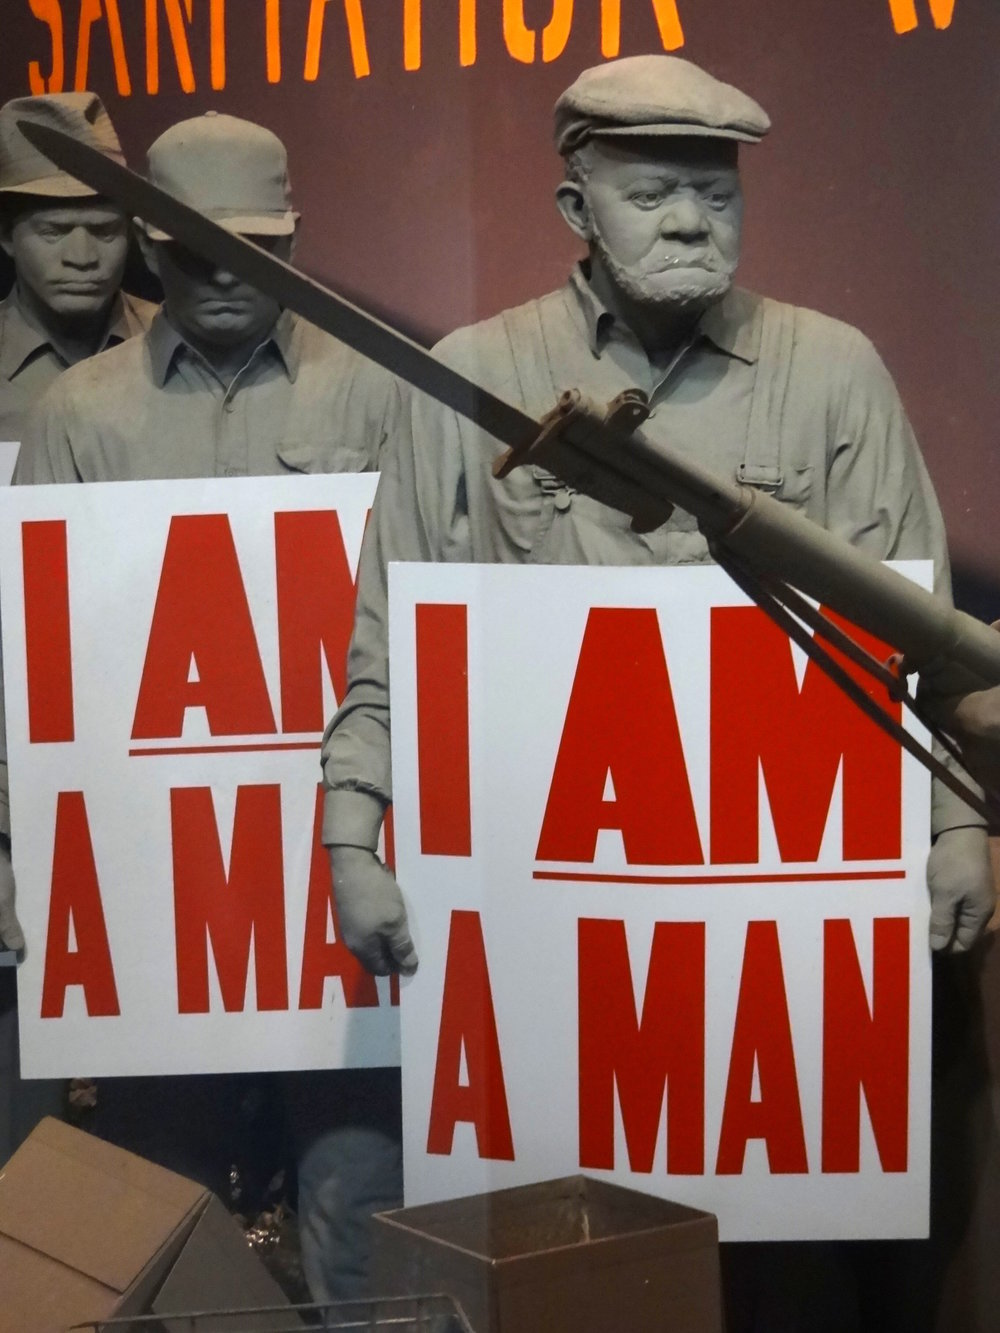 I_Am_a_Man_-_Diorama_of_Memphis_Sanitation_Workers_Strike_-_National_Civil_Rights_Museum_-_Downtown_Memphis_-_Tennessee_-_USA.jpg